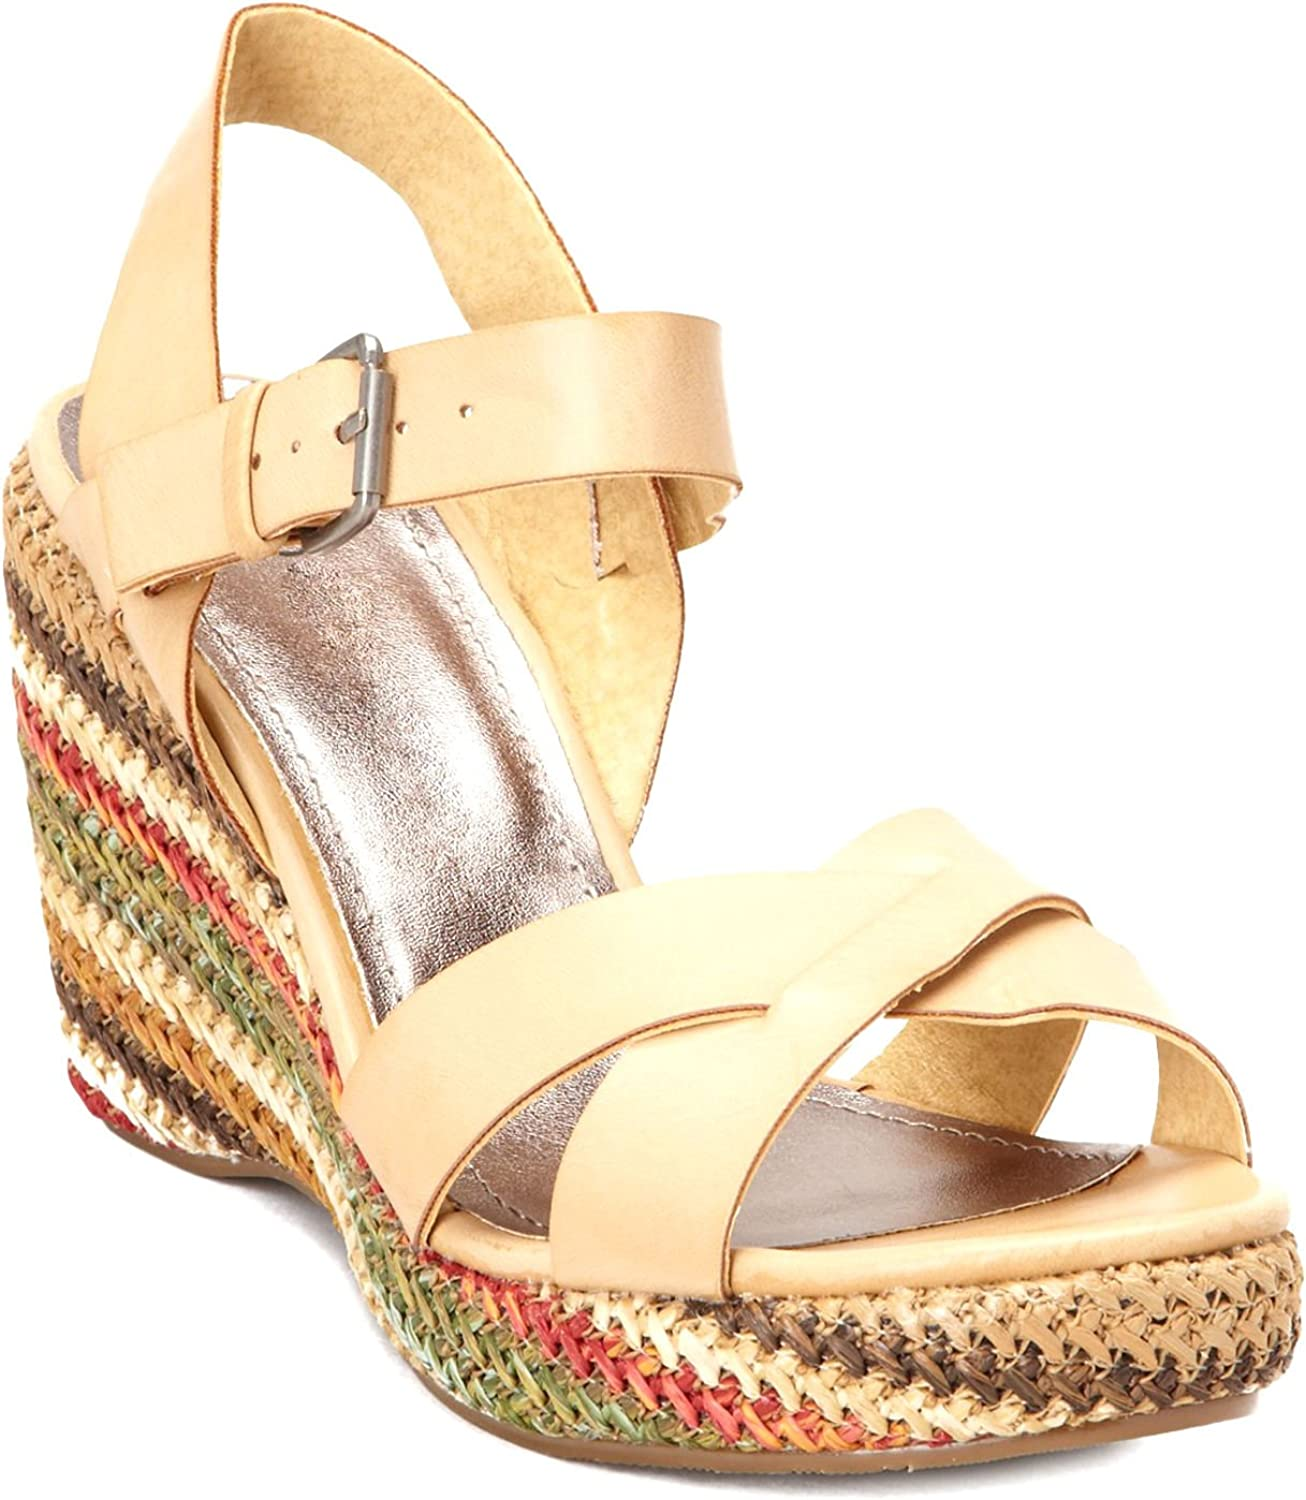 Matisse Coconuts Reale Wedge Sandal - Tan Women's shoes Size 8